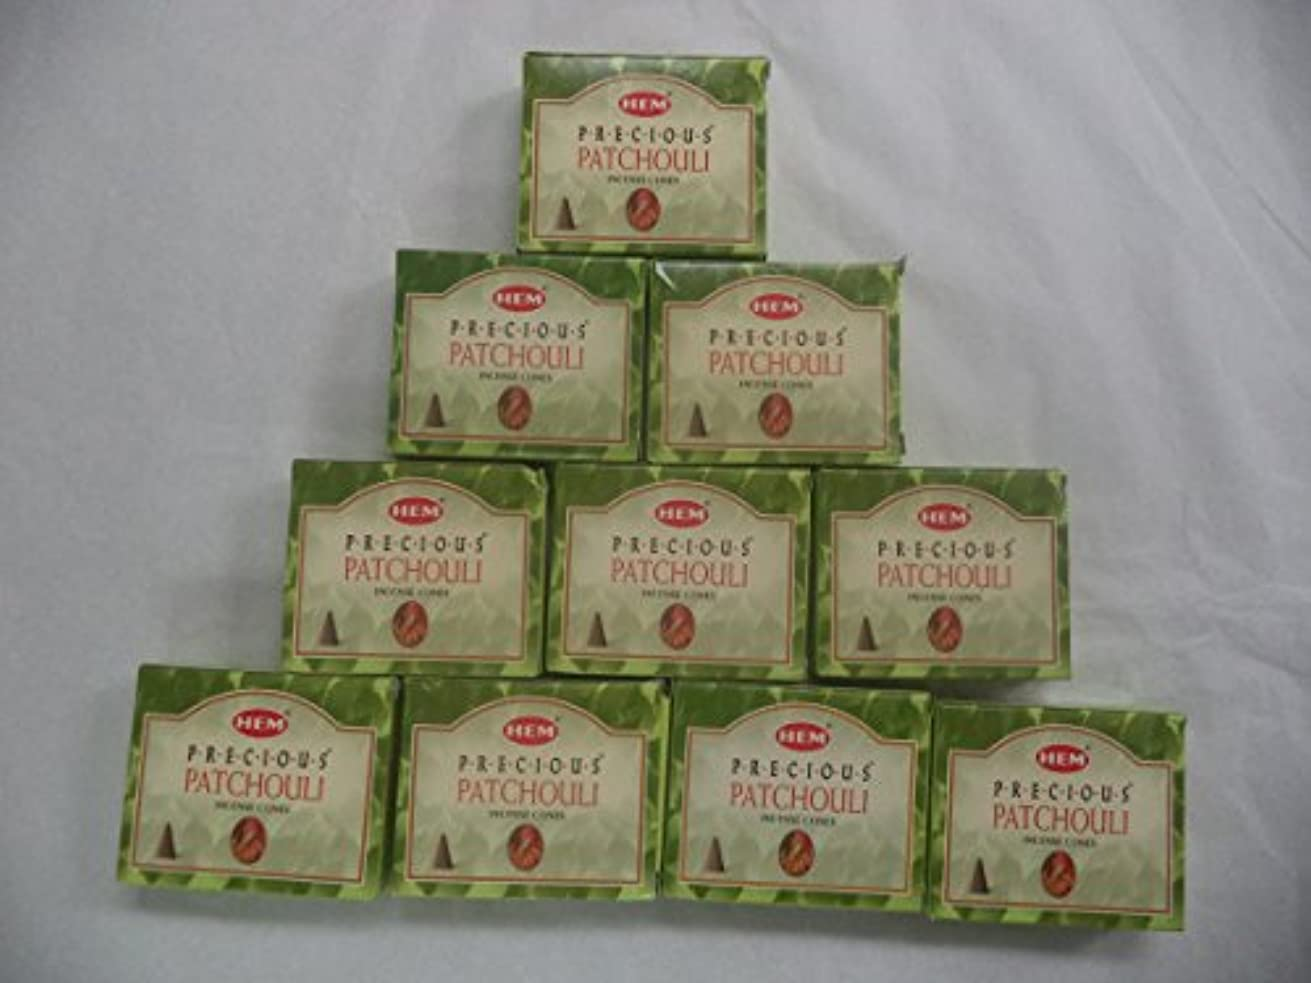 ひまわり杖海上HEM Incense Cones: Precious Patchouli - 10 Packs of 10 = 100 Cones by Hem